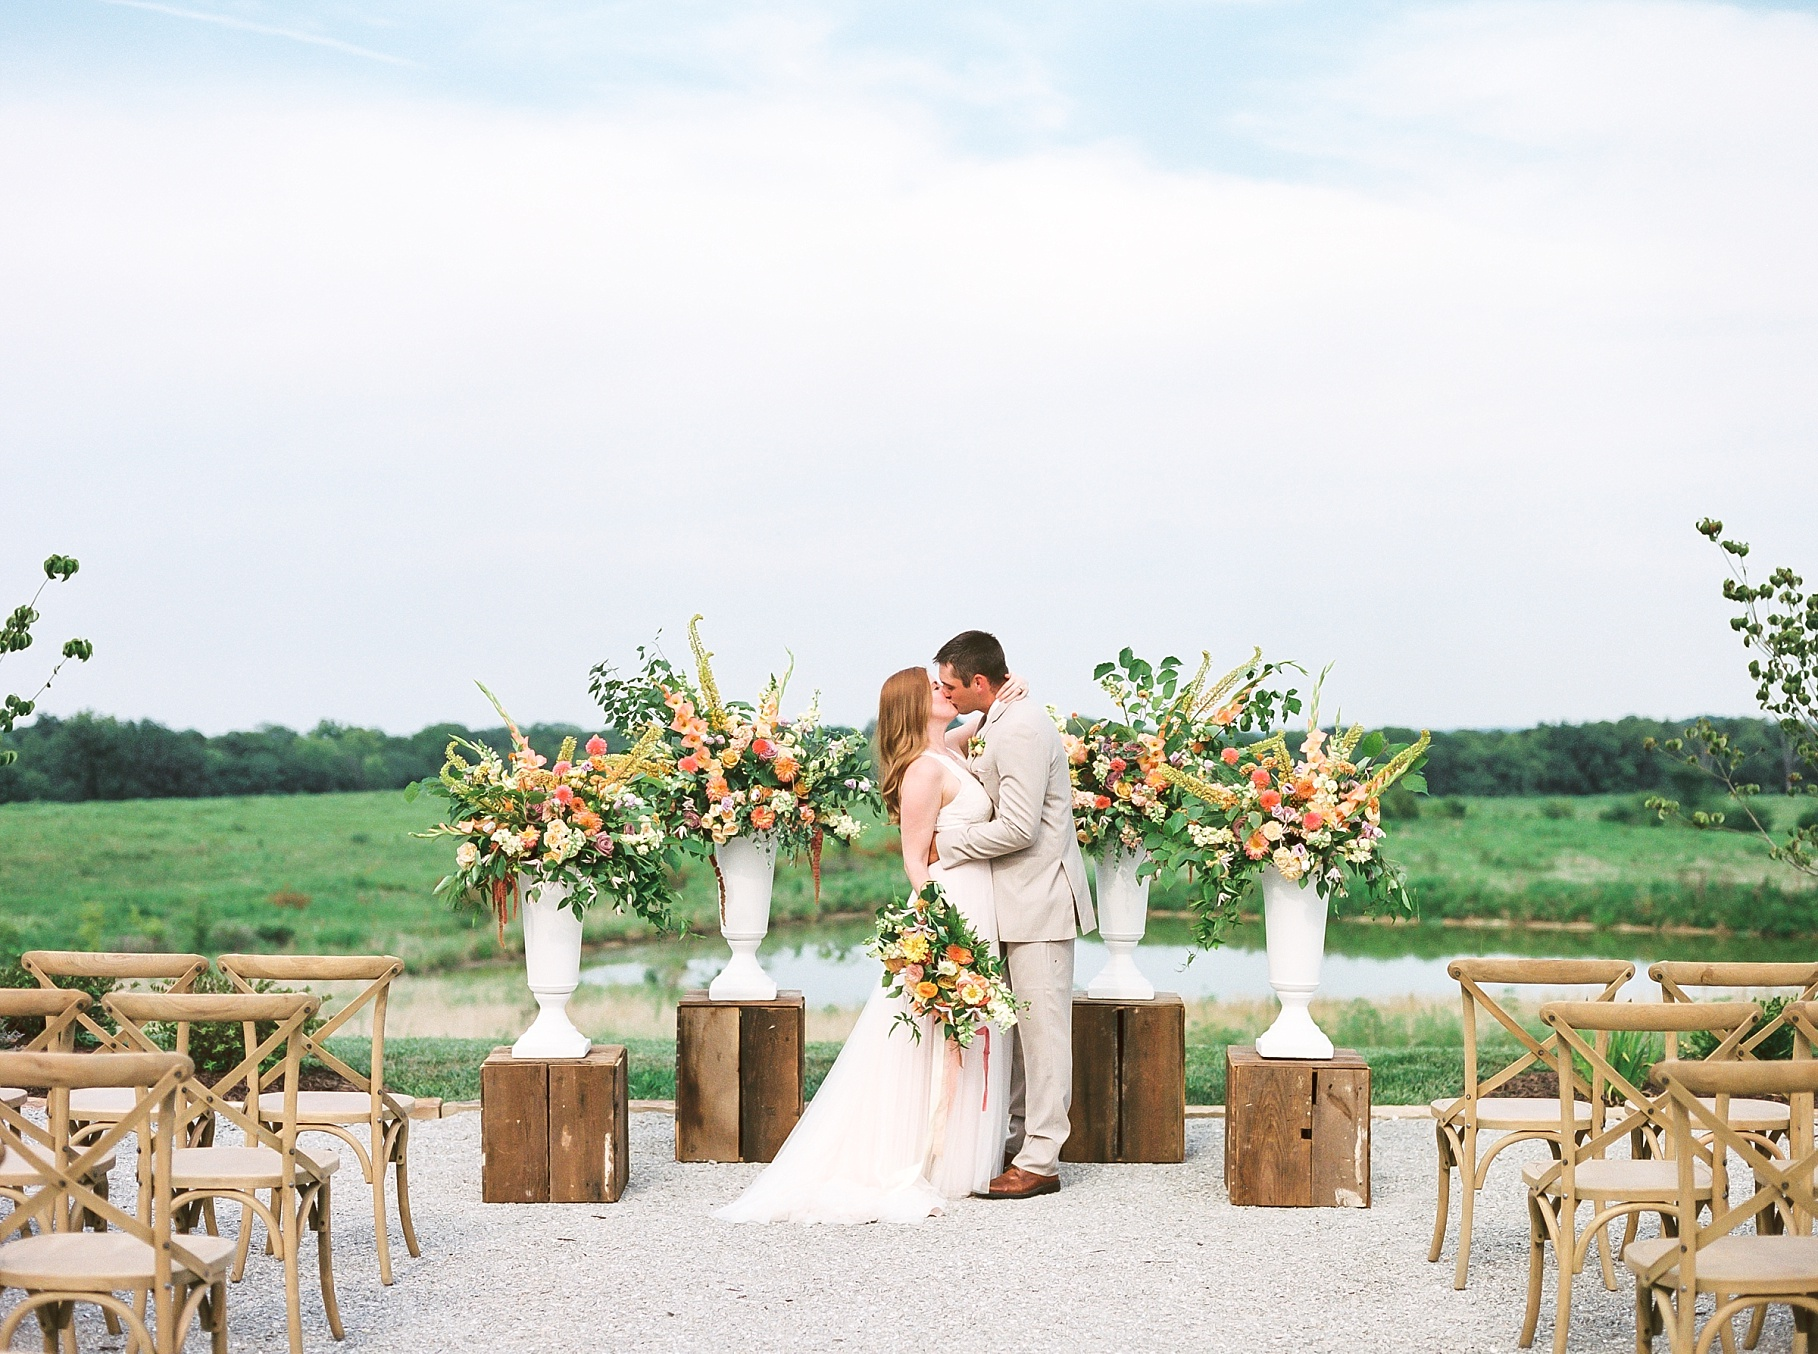 Late Summer Wedding With Pastel Toned Soiree at Blue Bell Farm by Kelsi Kliethermes Photography Best Columbia Missouri Wedding Photographer_0021.jpg